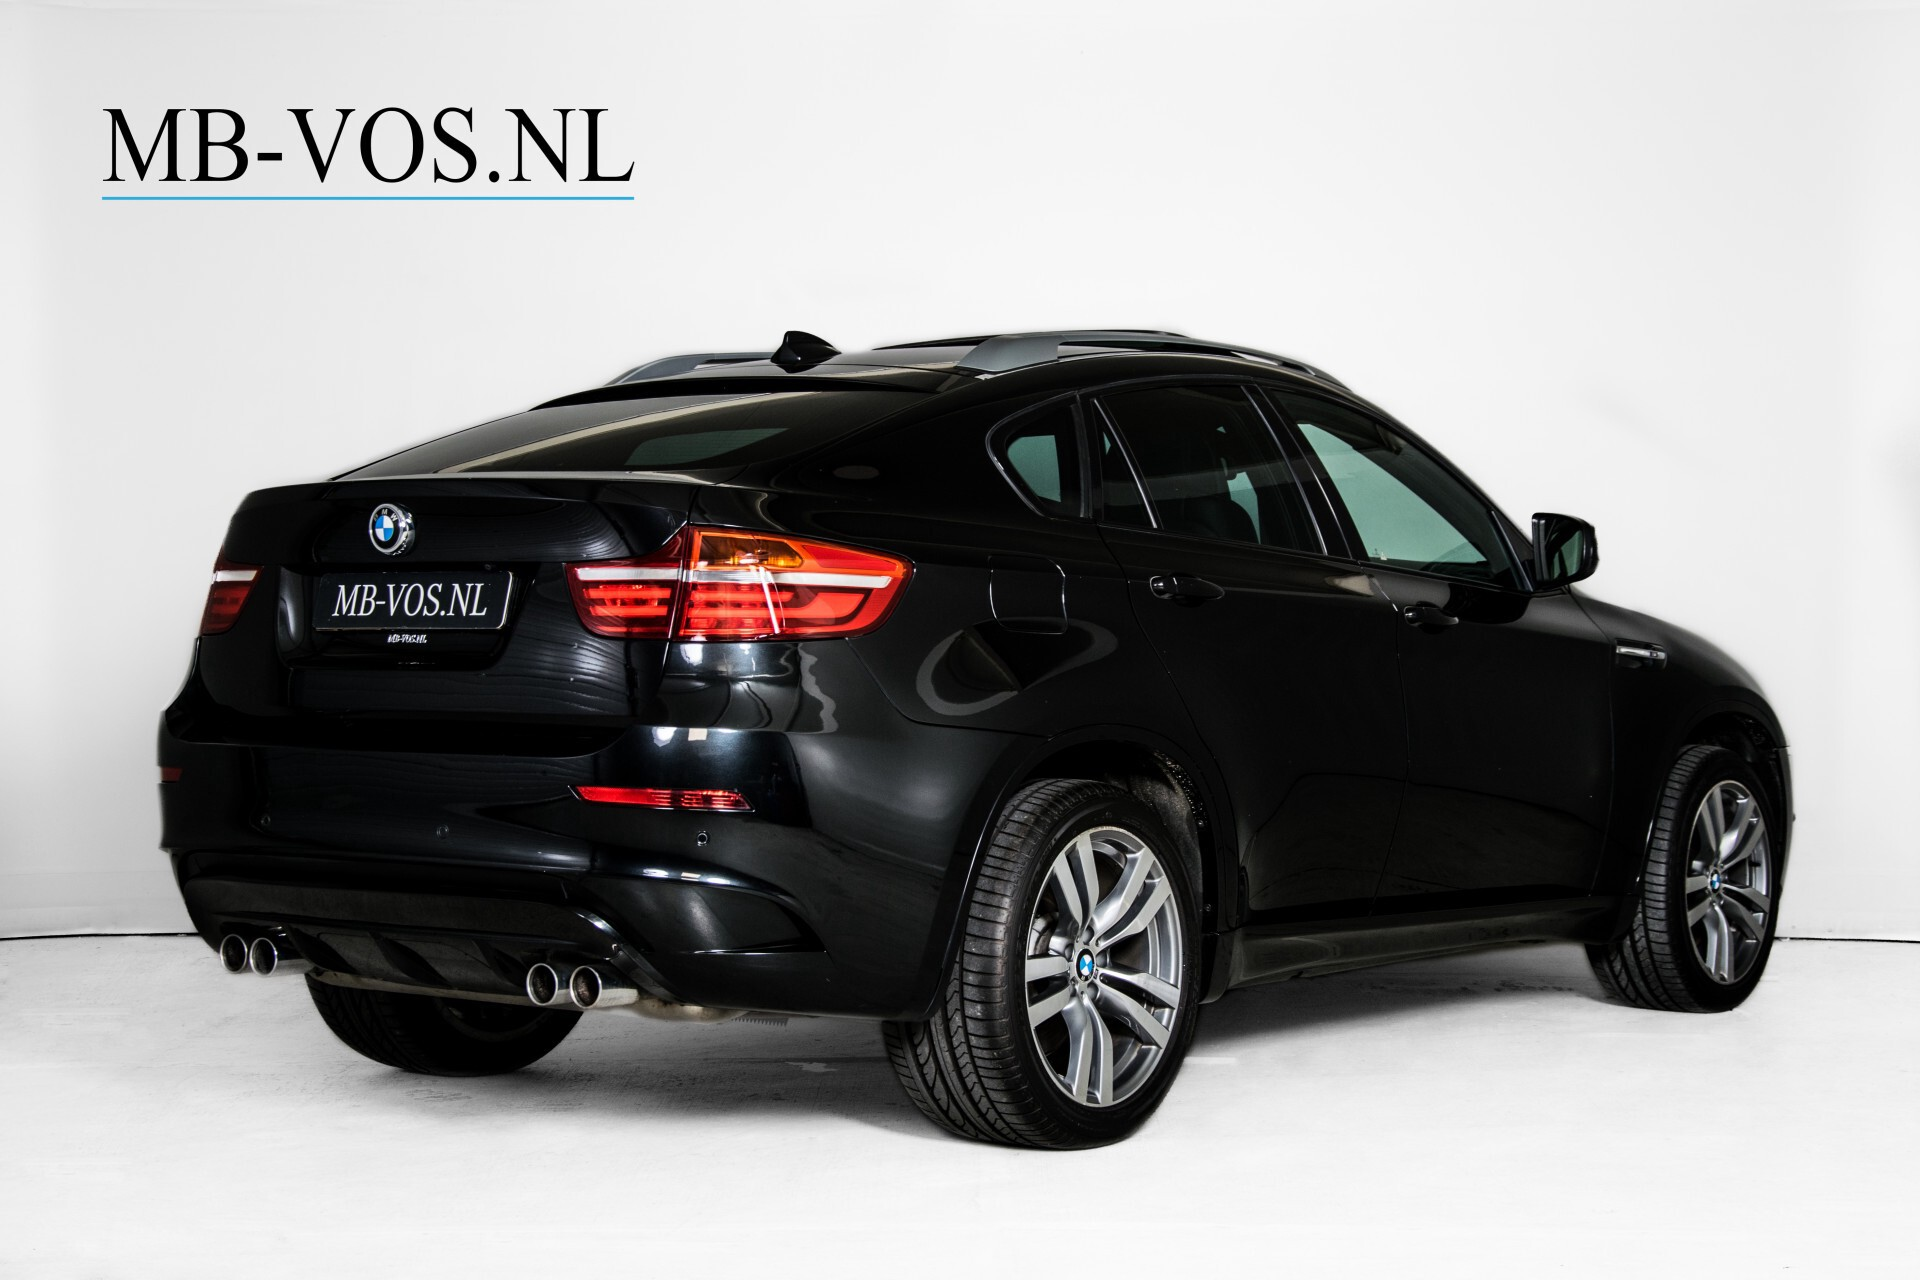 BMW X6 4.4i M Pano/Adaptive Drive/HUD/Keyless/360camera/TV/Drivers Pack/Entertainment/Shadowline Aut6 Foto 2